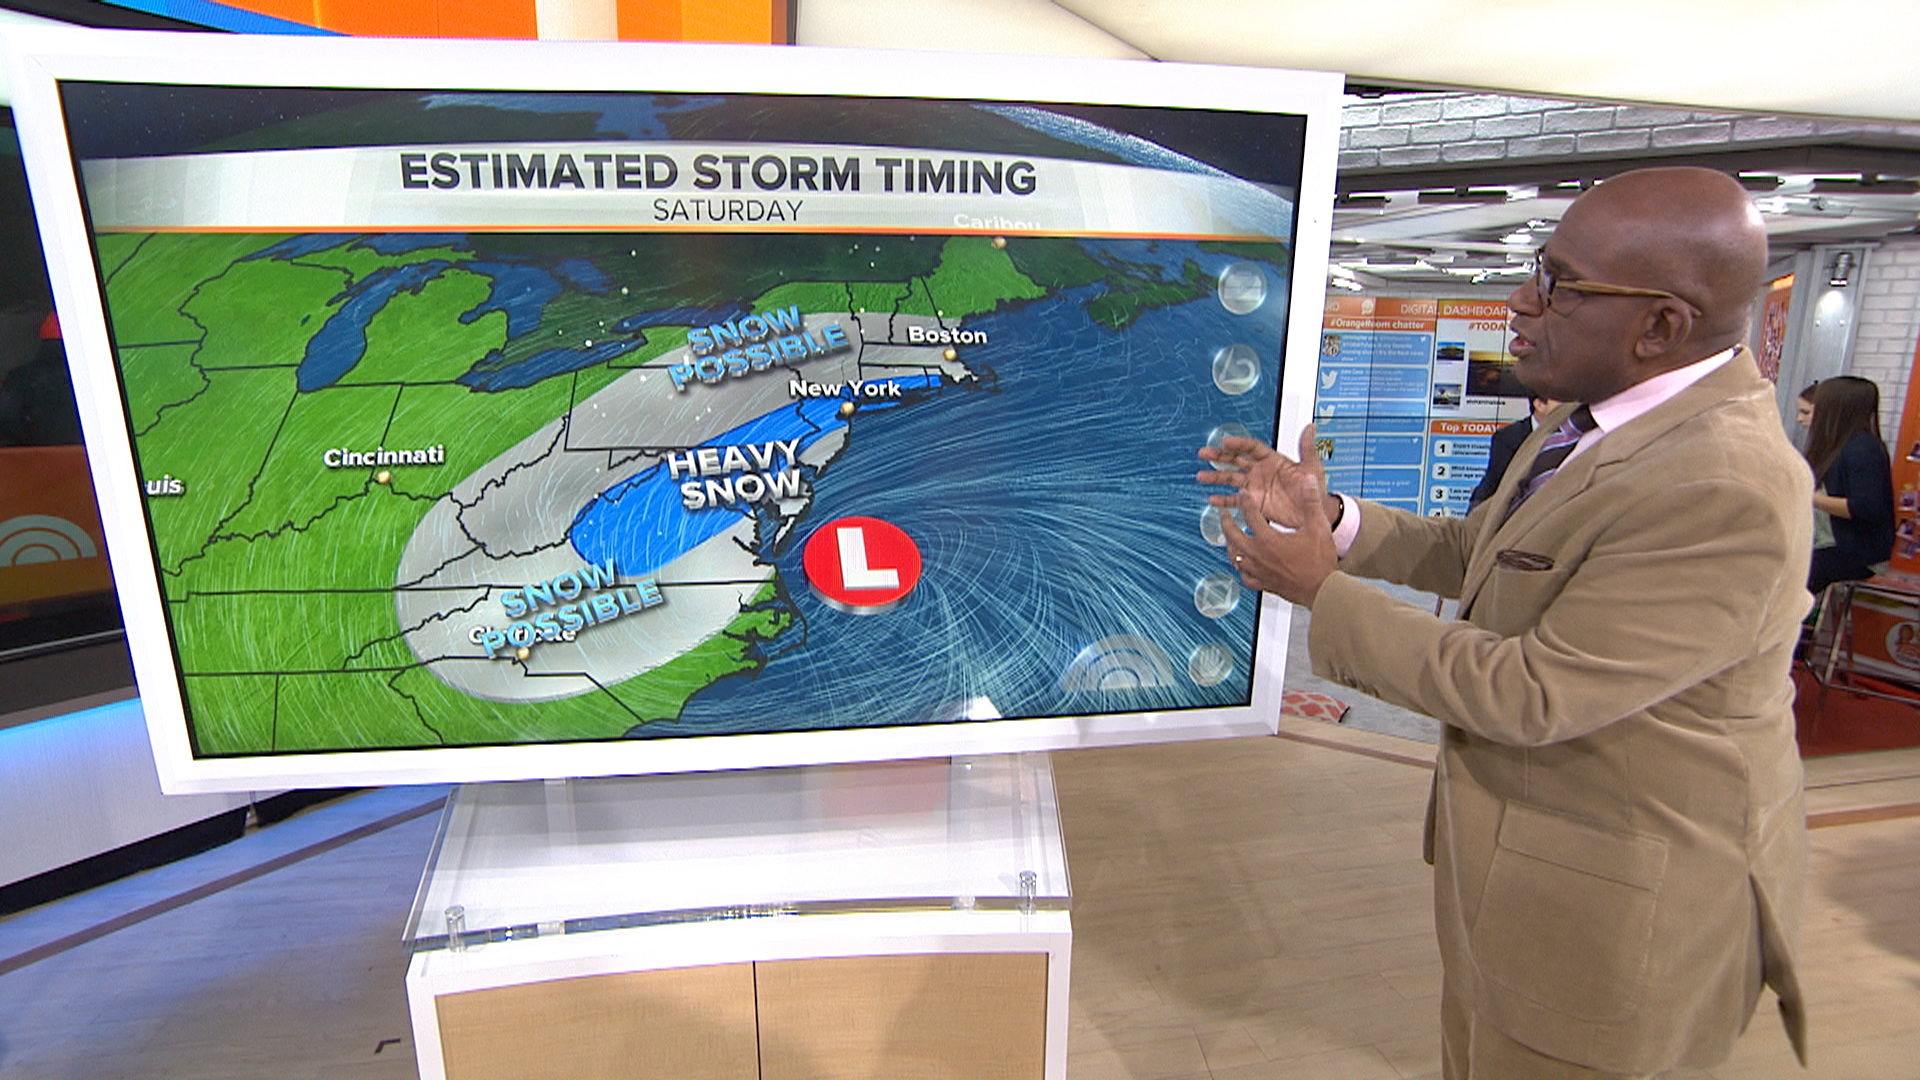 Significant' storm predicted to hit East Coast - NBC News